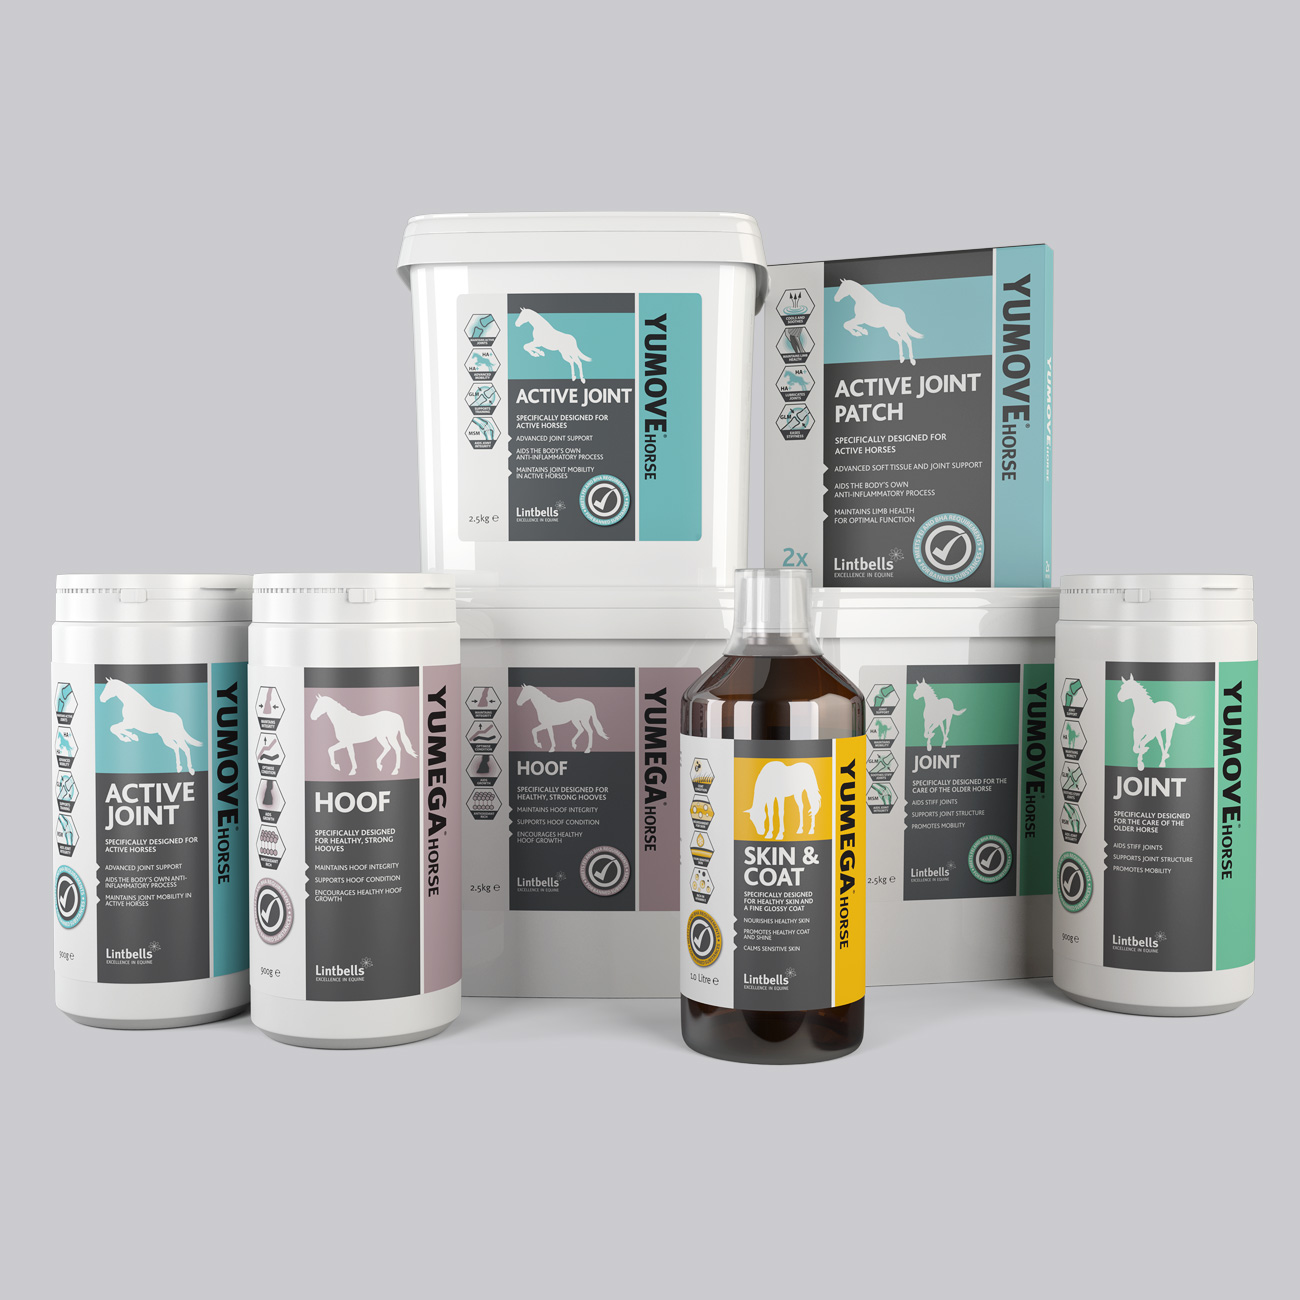 Packaging and branding for Lintbells equine range